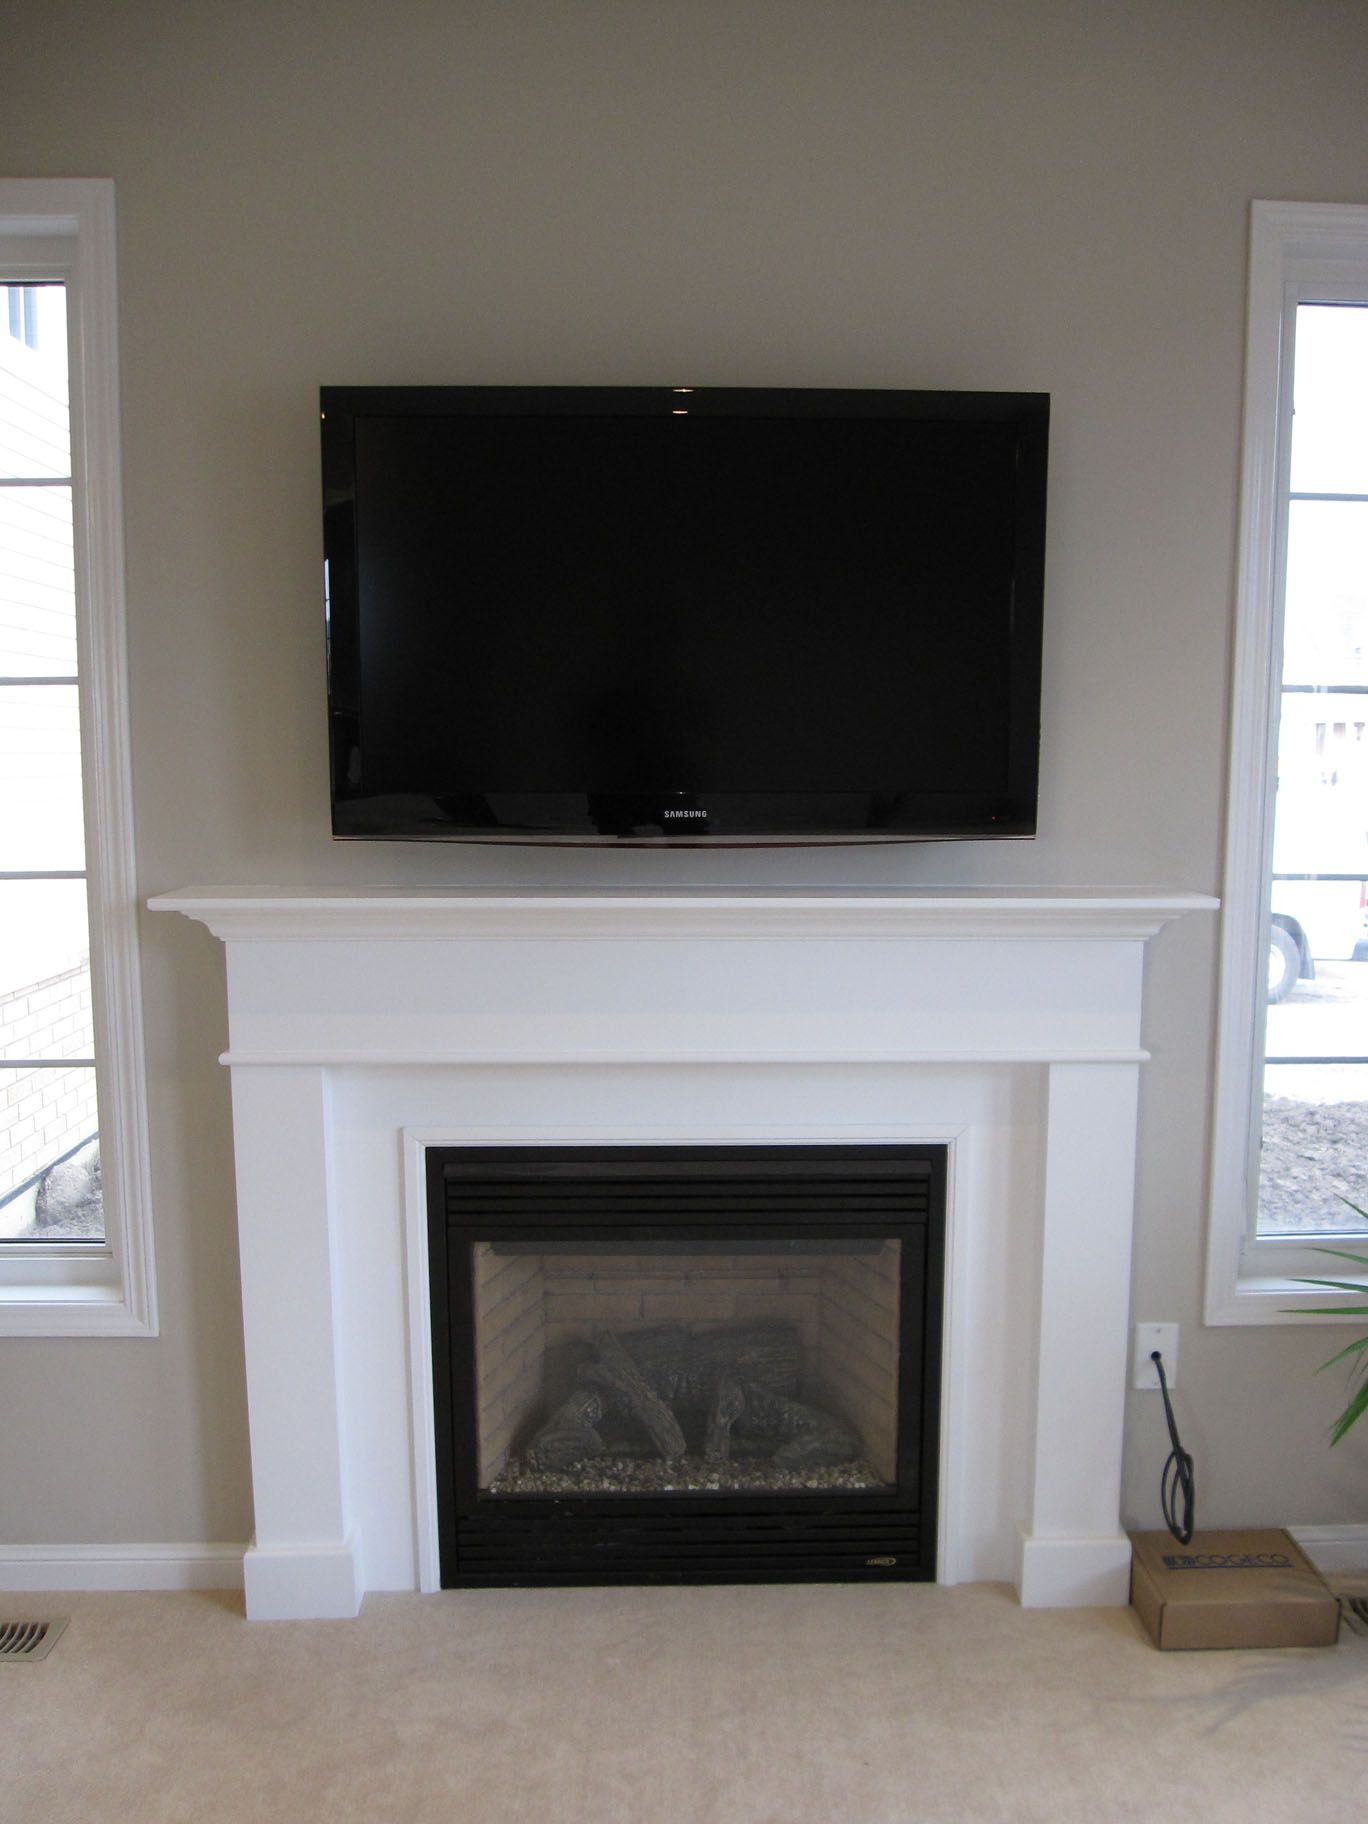 Resemblance of How to Get the Proper Fireplace Mantel Height for the